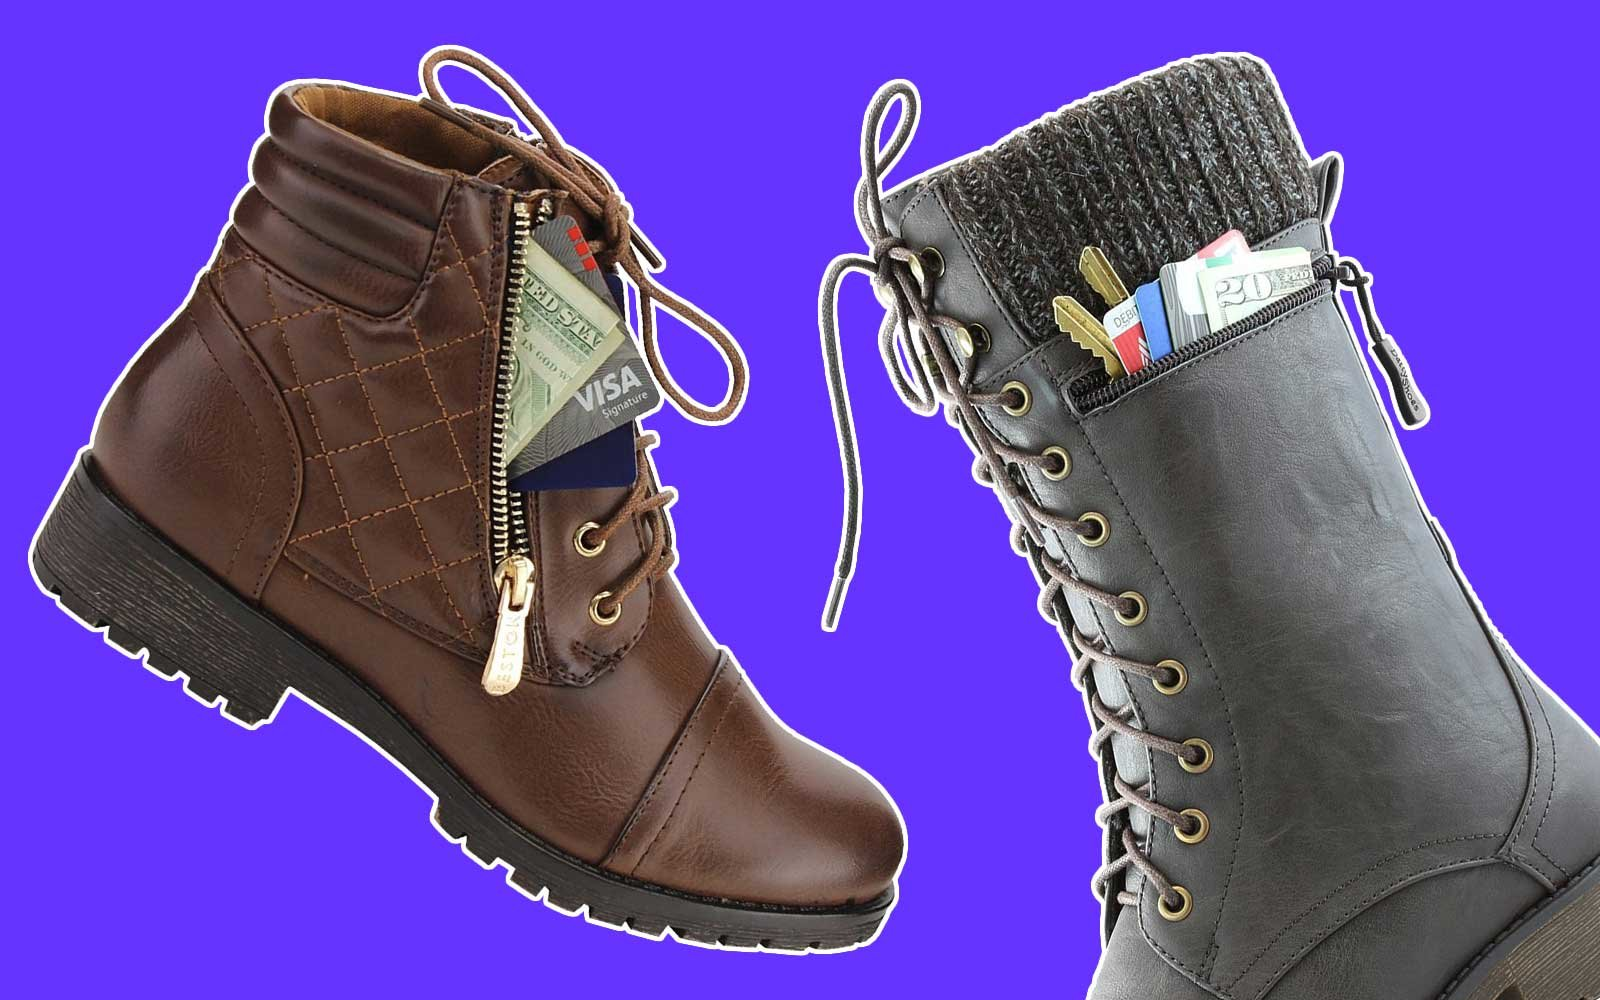 Boots with Pockets